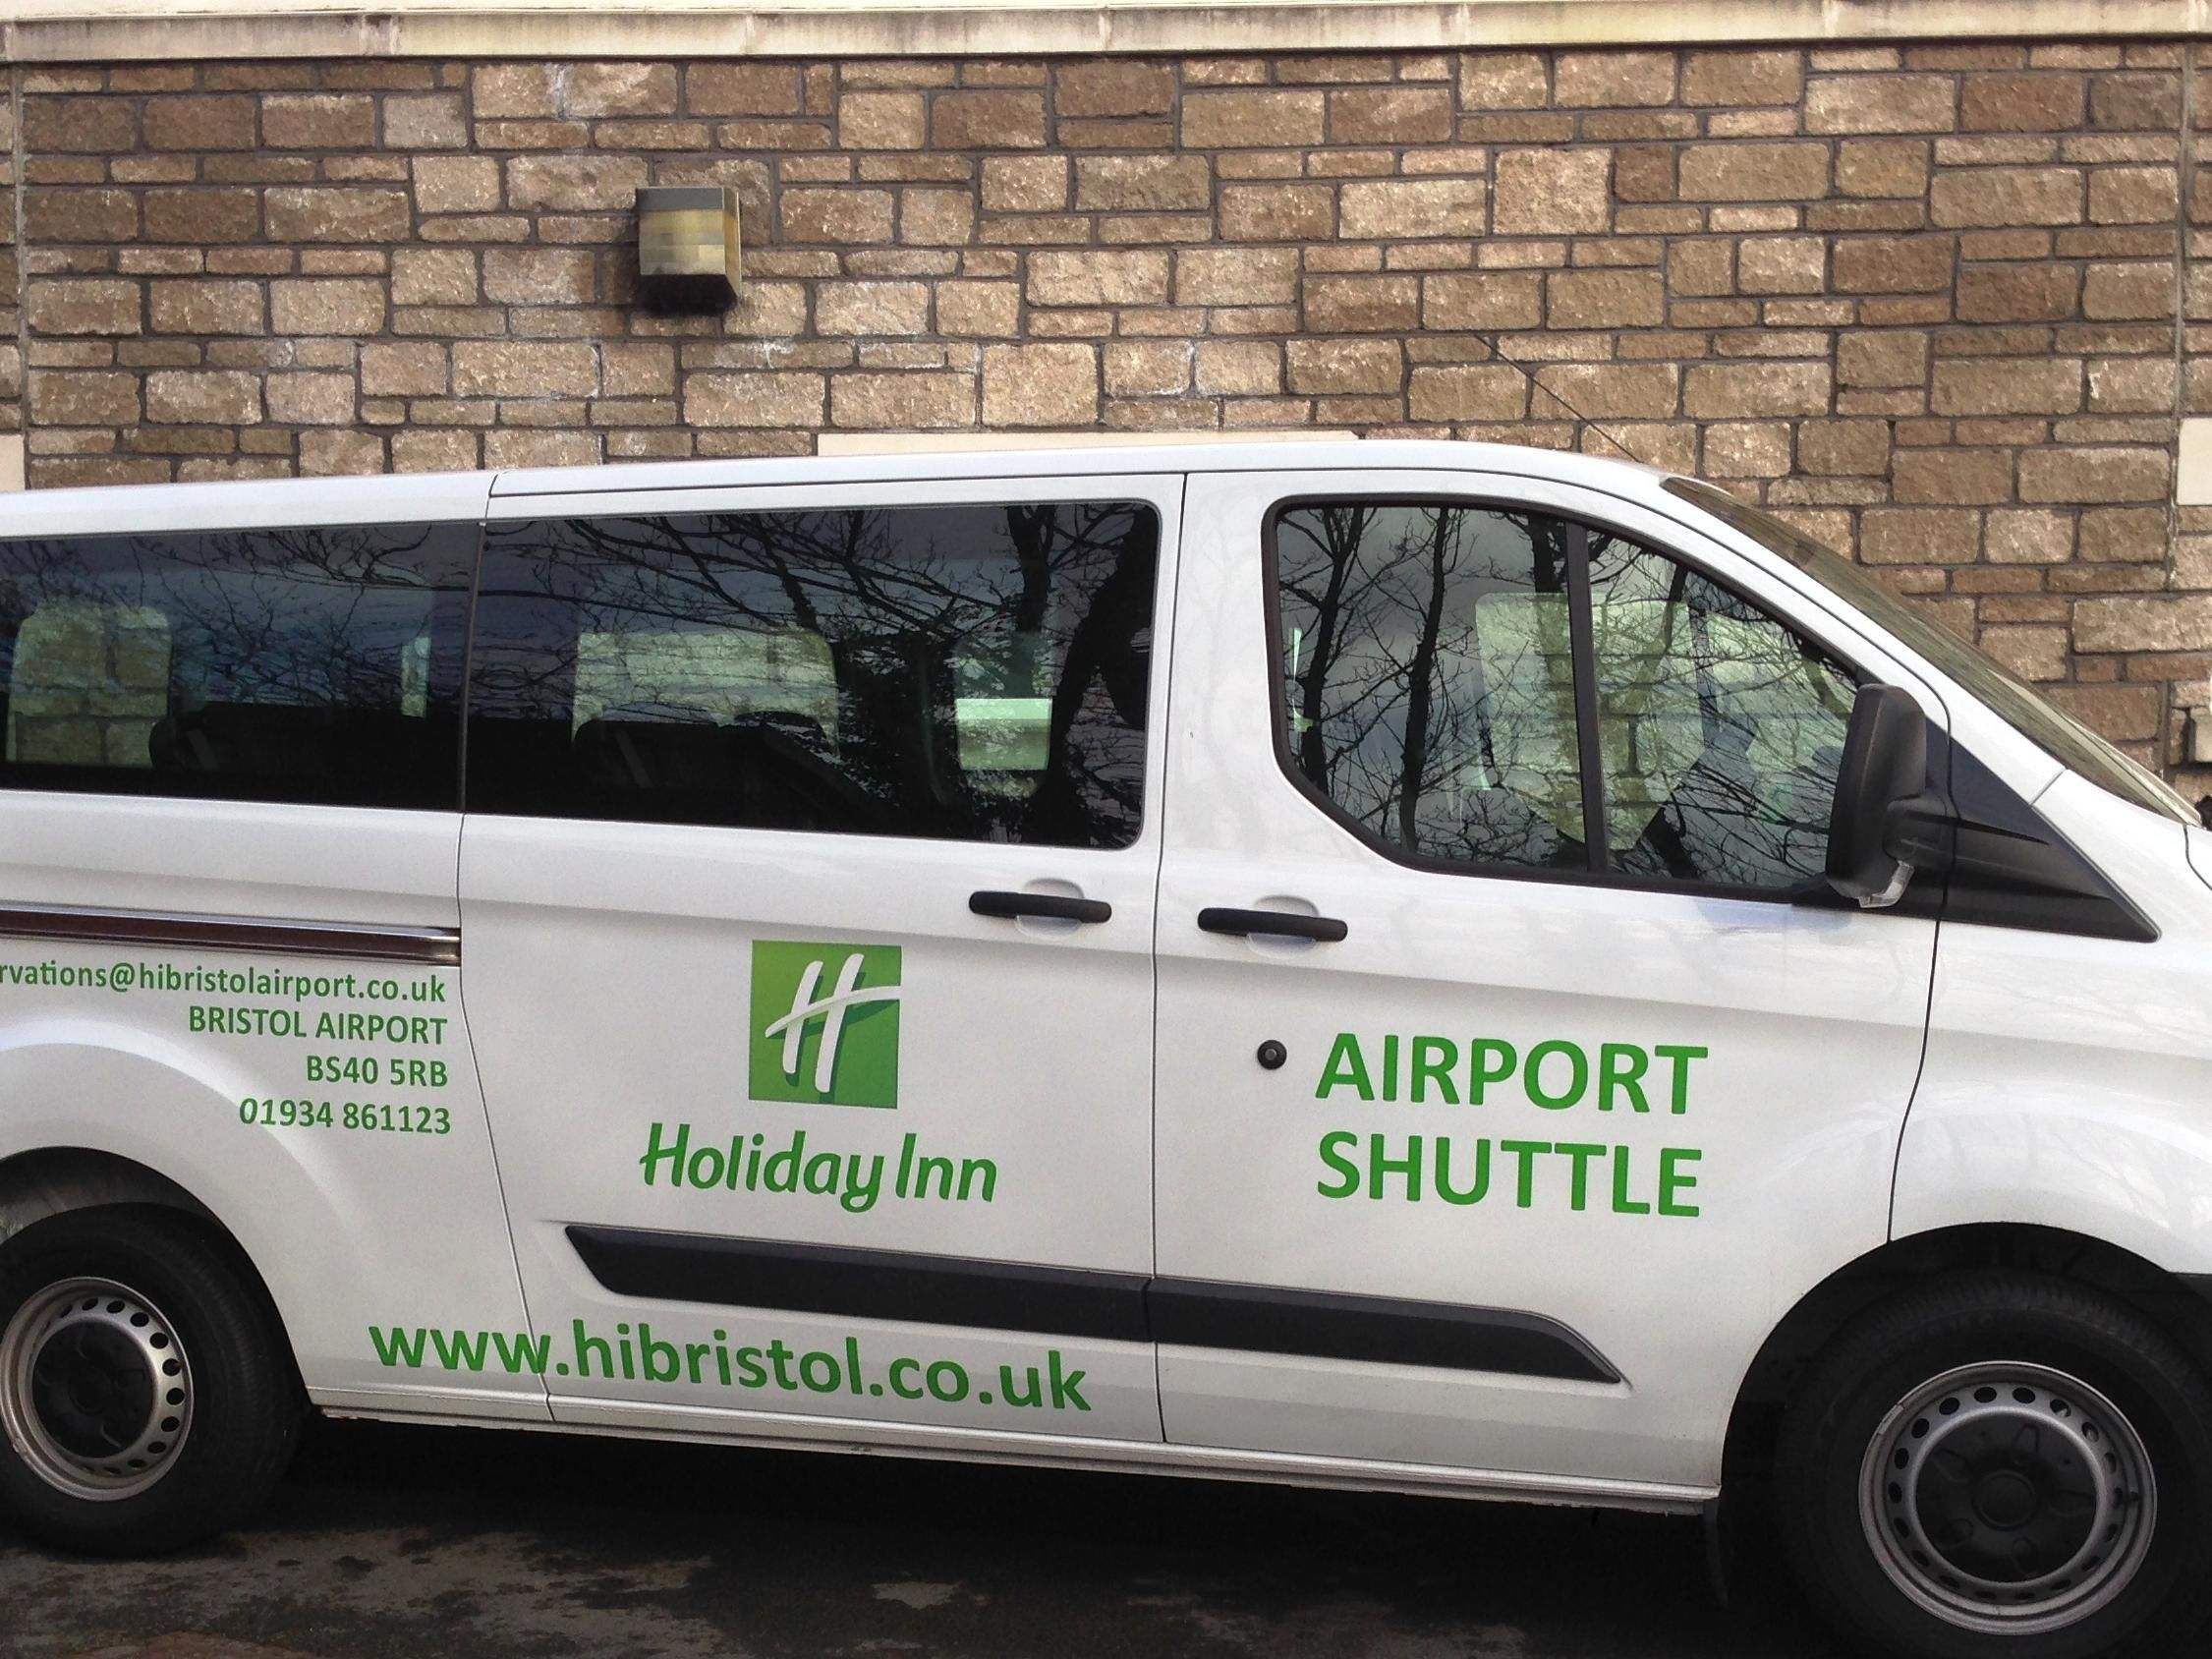 Our shuttle bus - ready and waiting to take you to the airport